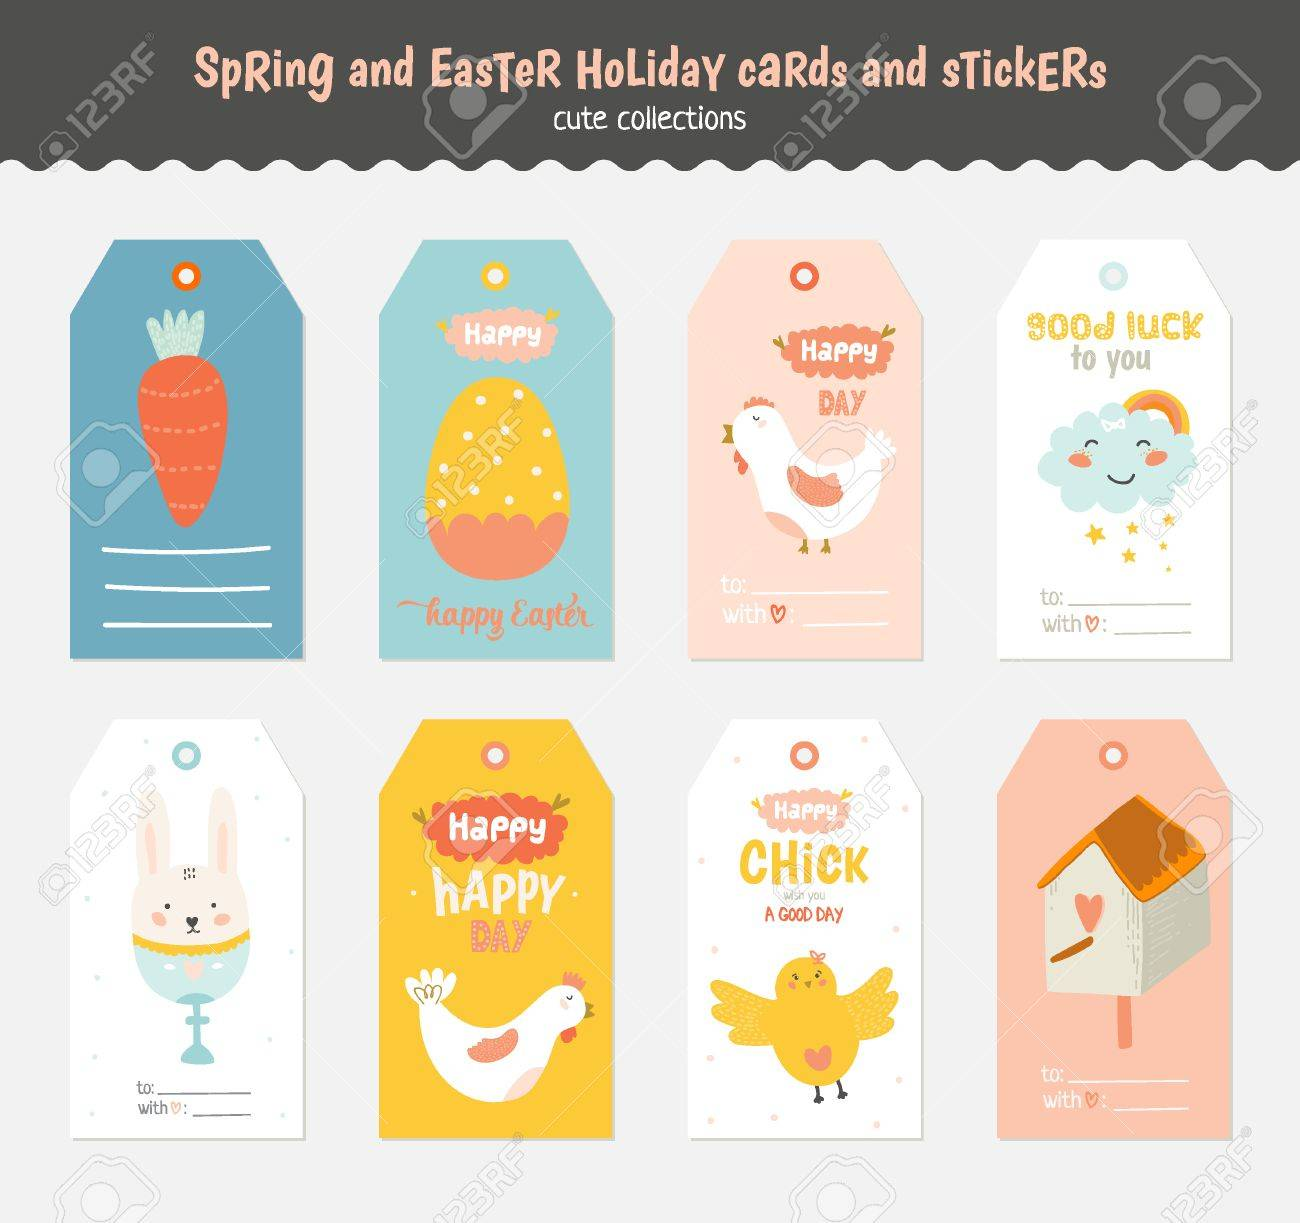 Beautiful Collection Of Easter Greeting Cards Gift Tags Stickers